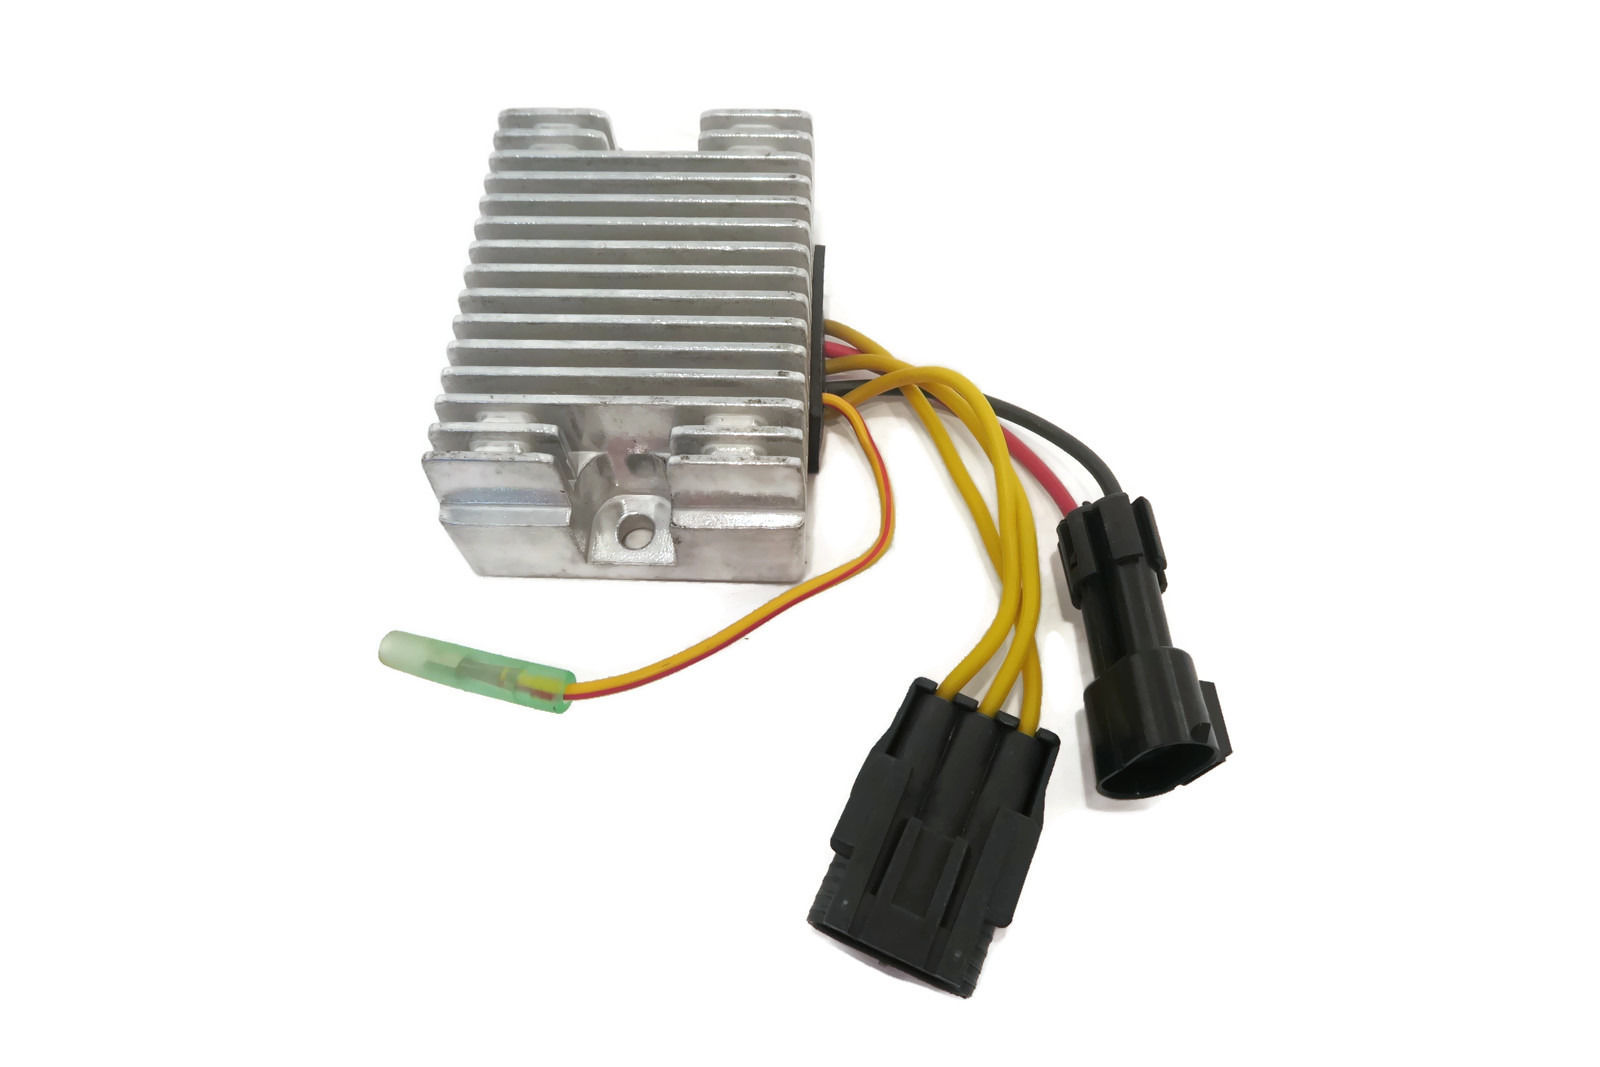 VOLTAGE REGULATOR RECTIFIER for Polaris 4012192 All Terrain 4 Four Wheeler ATV